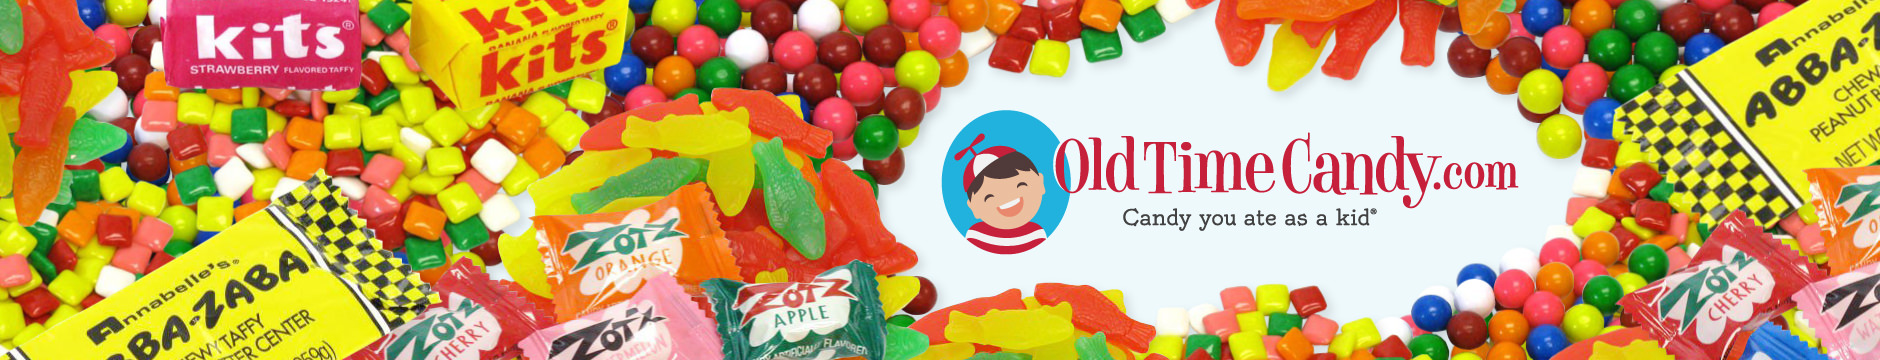 Get 10% off Made in the USA candy from Old Time Candy + Free Shipping On Orders Over $250 In The Continental U.S. At OldTimeCandy.com!